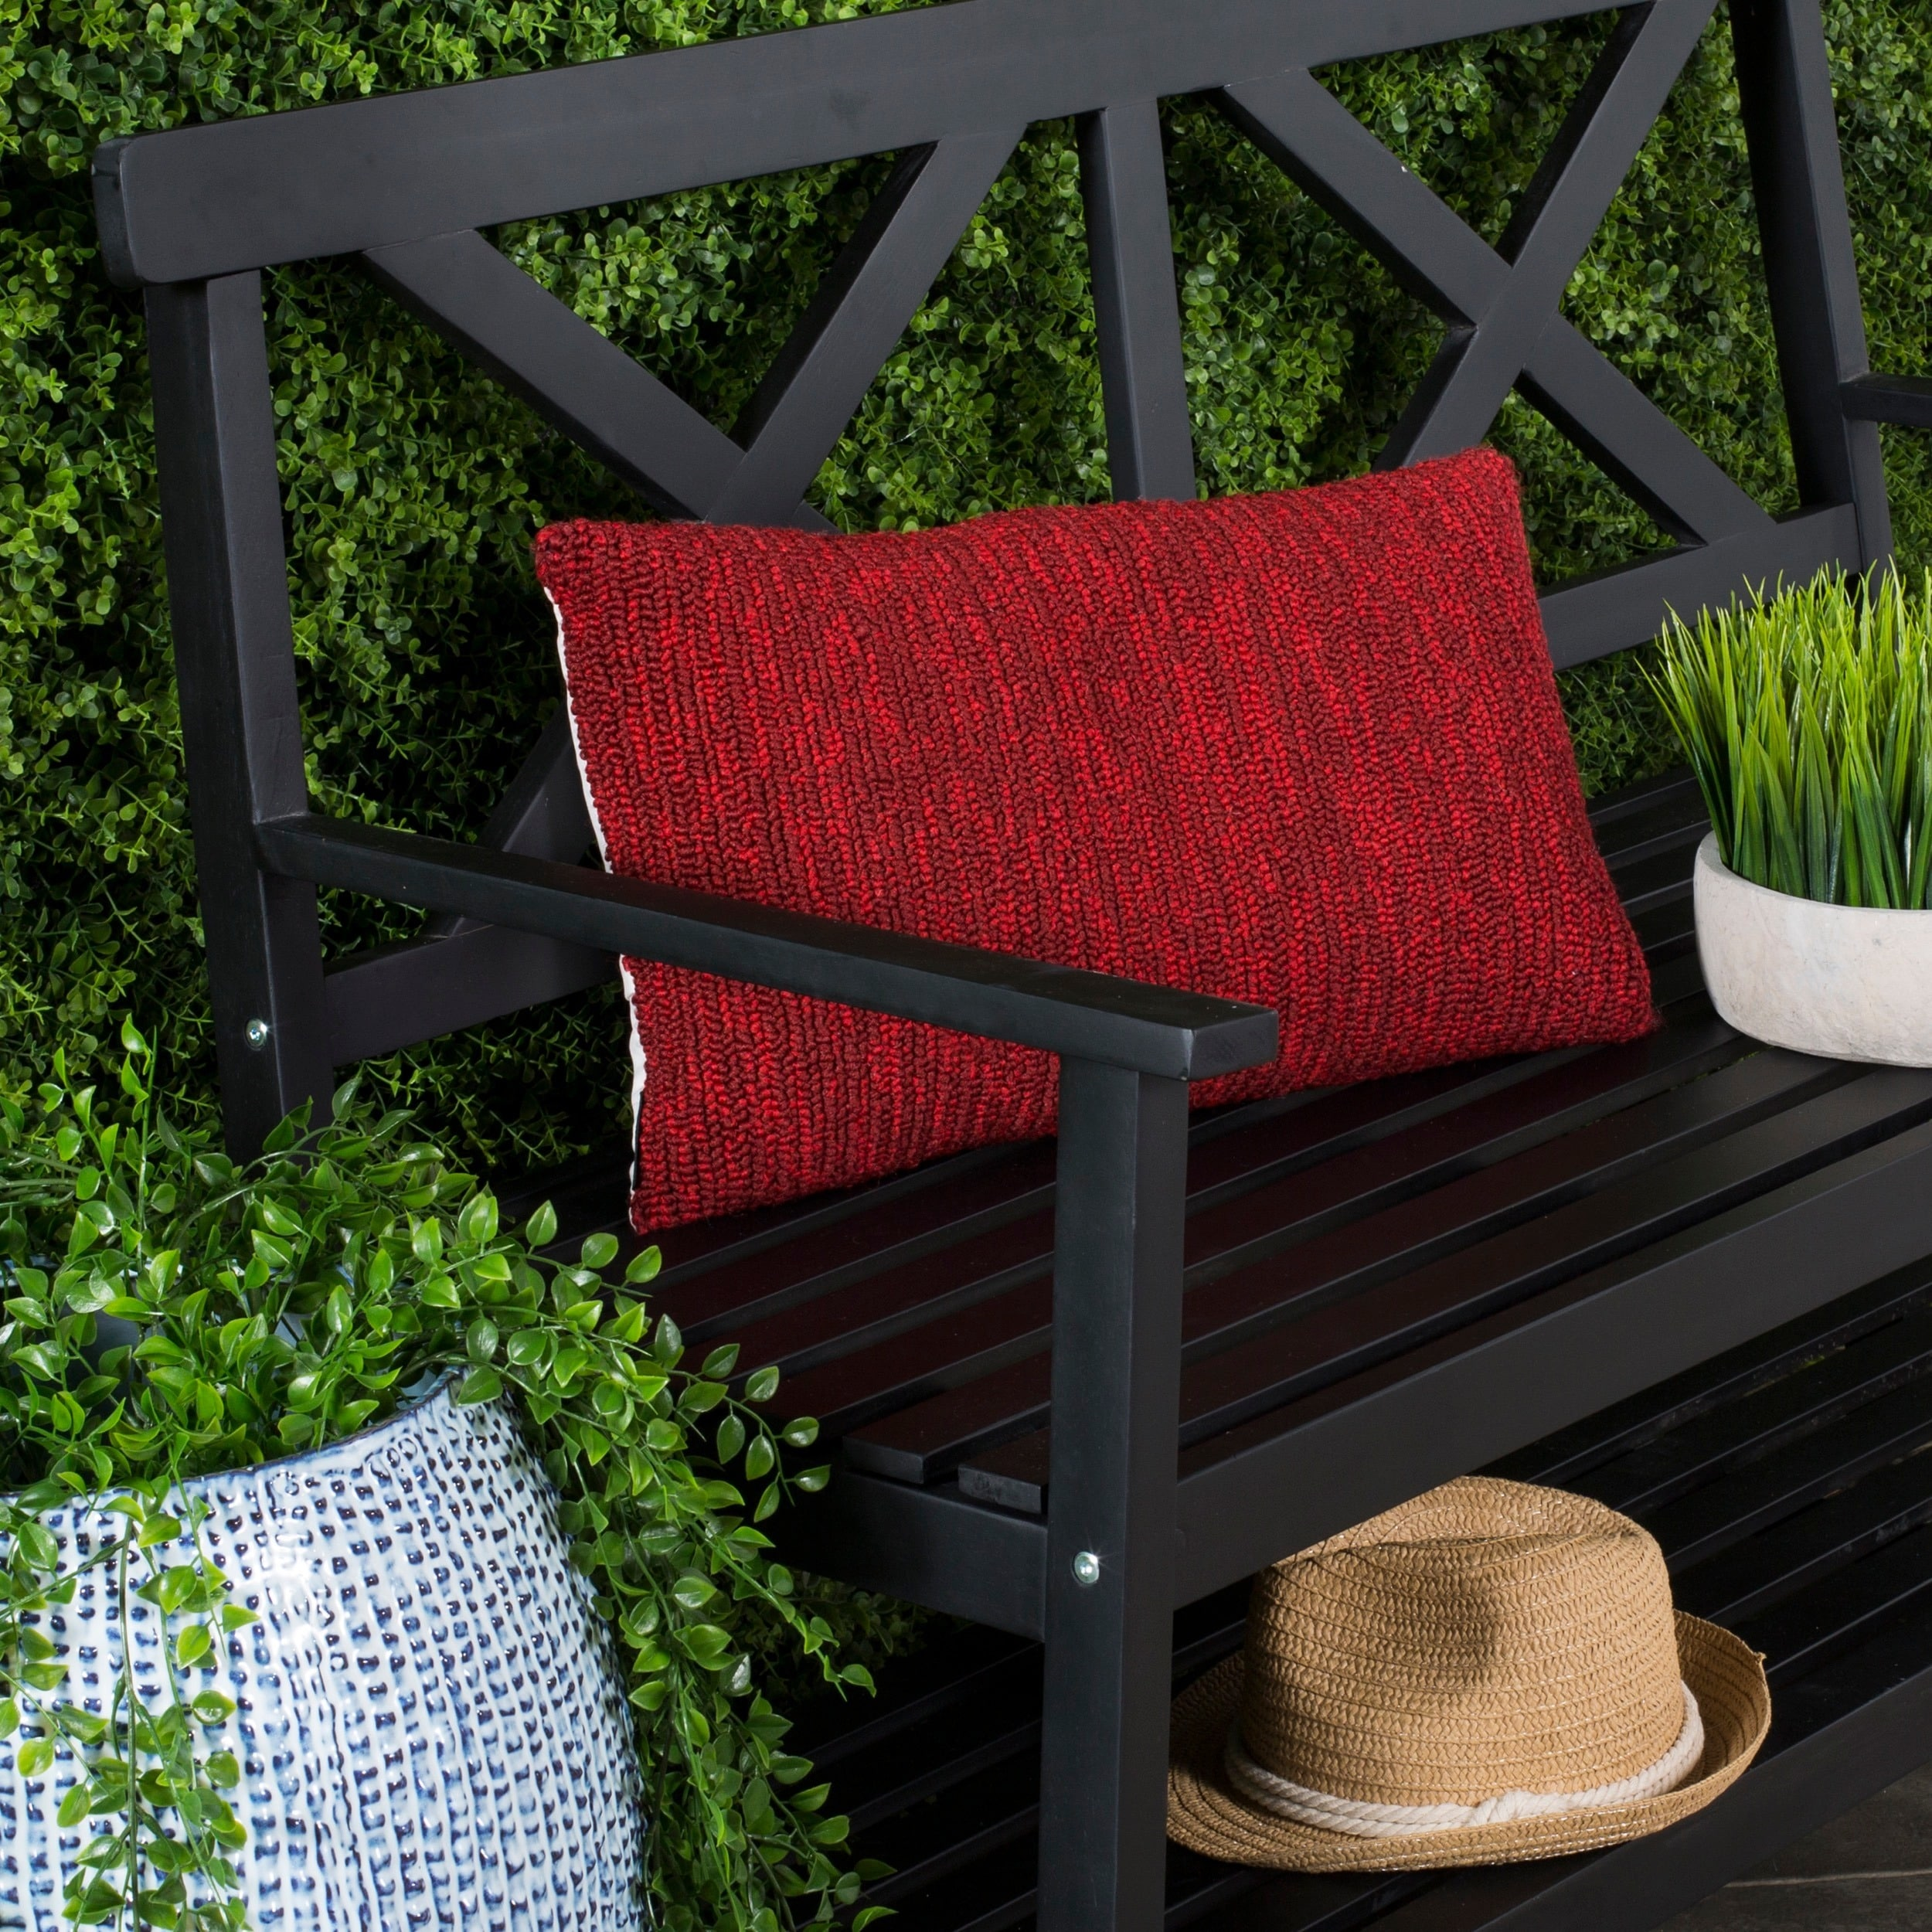 Outdoor Furniture Ringwood Red Decorative Accessories Sale Ends In 2 Days Find Great Home